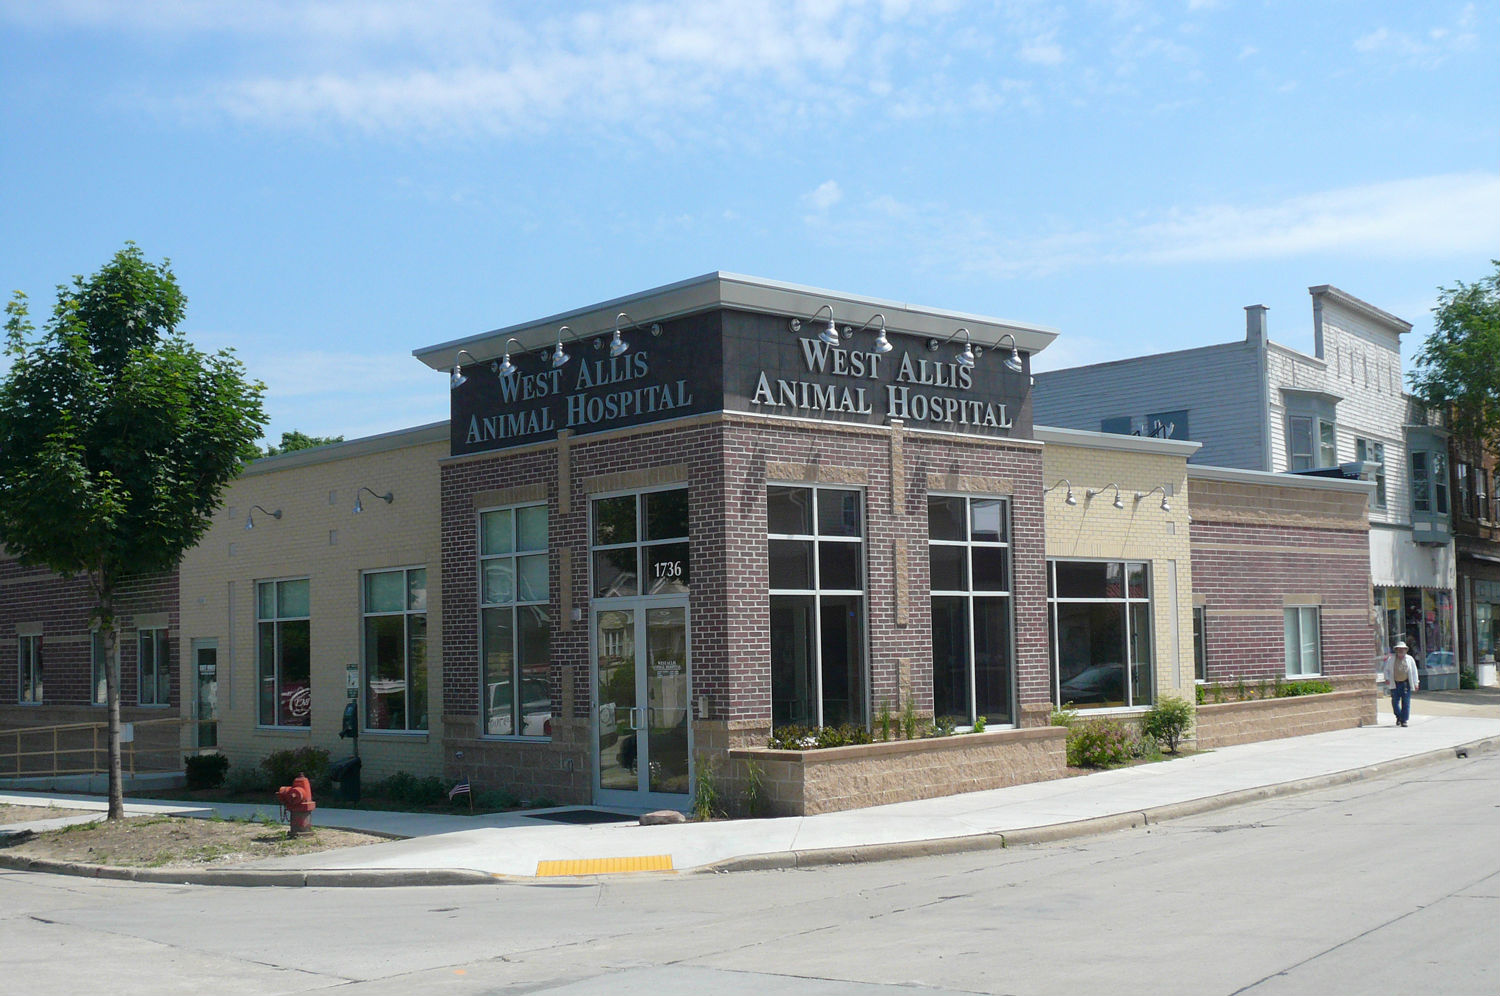 West Allis Animal Hospital (Healthcare)